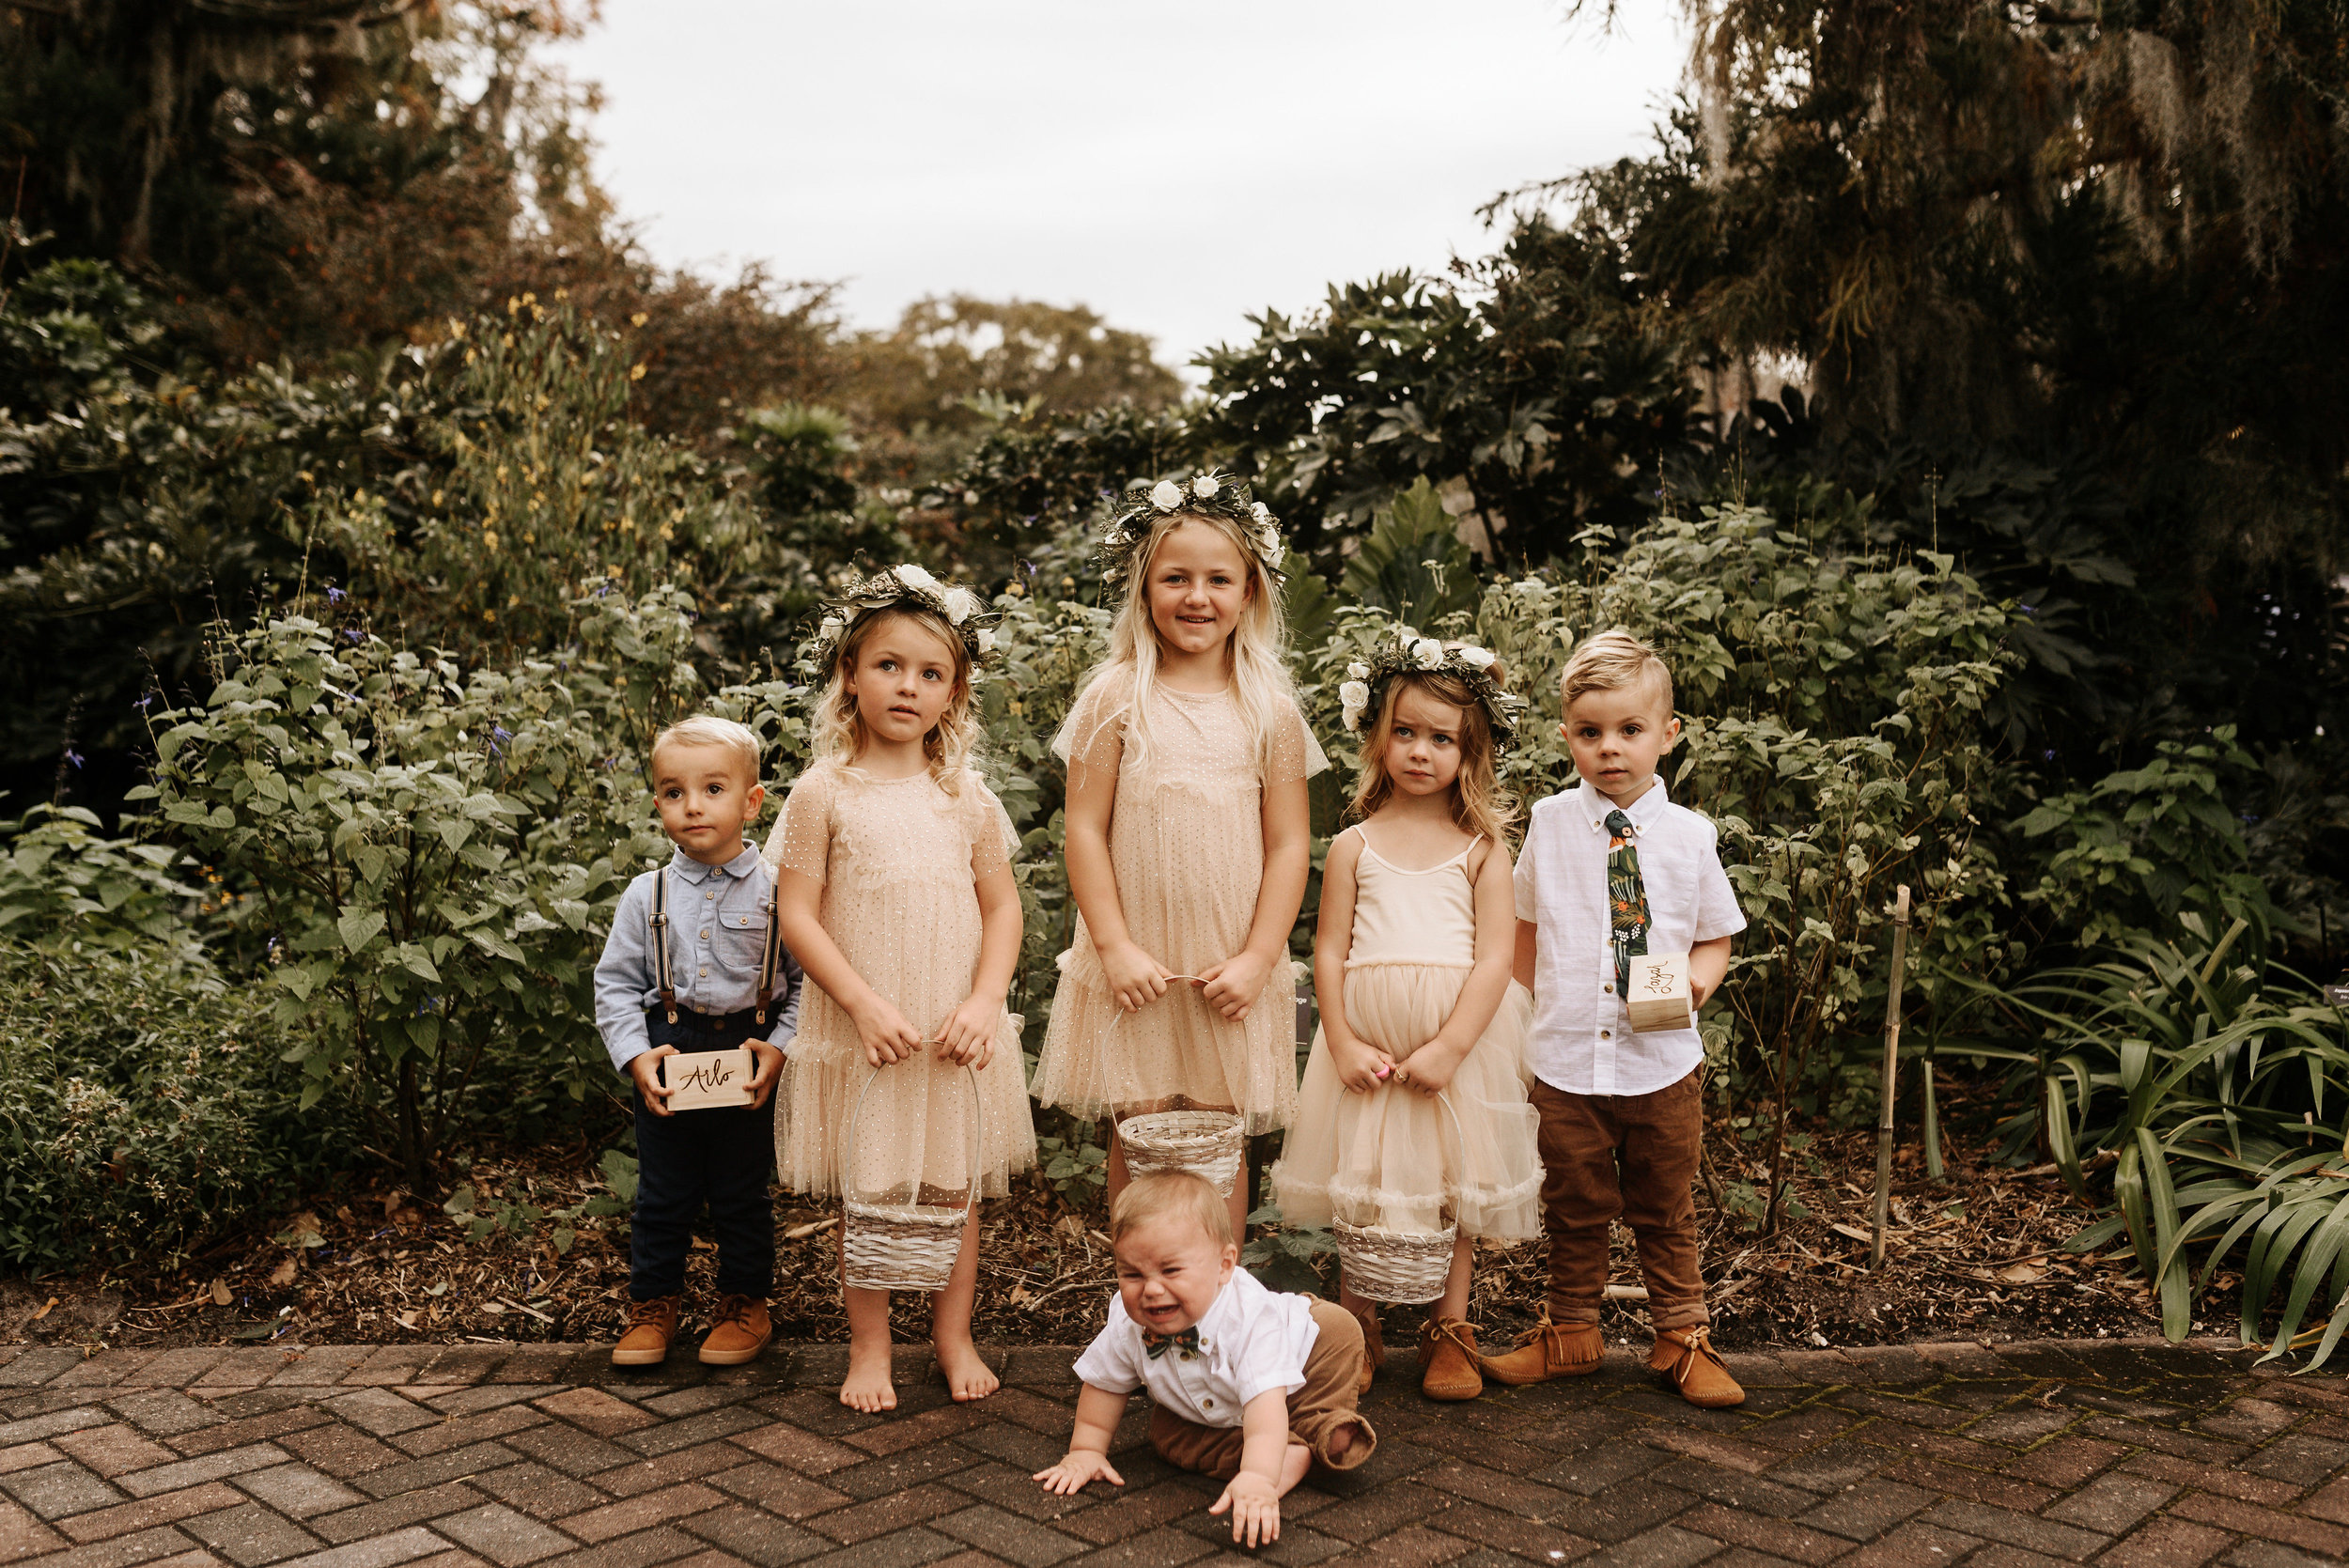 Kourtney_Sean_Savannah_Georgia_Wedding_Wormsloe_Histroic_Site_Coastal_Georgia_Botanical_Gardens_Photography_by_V_3949.jpg